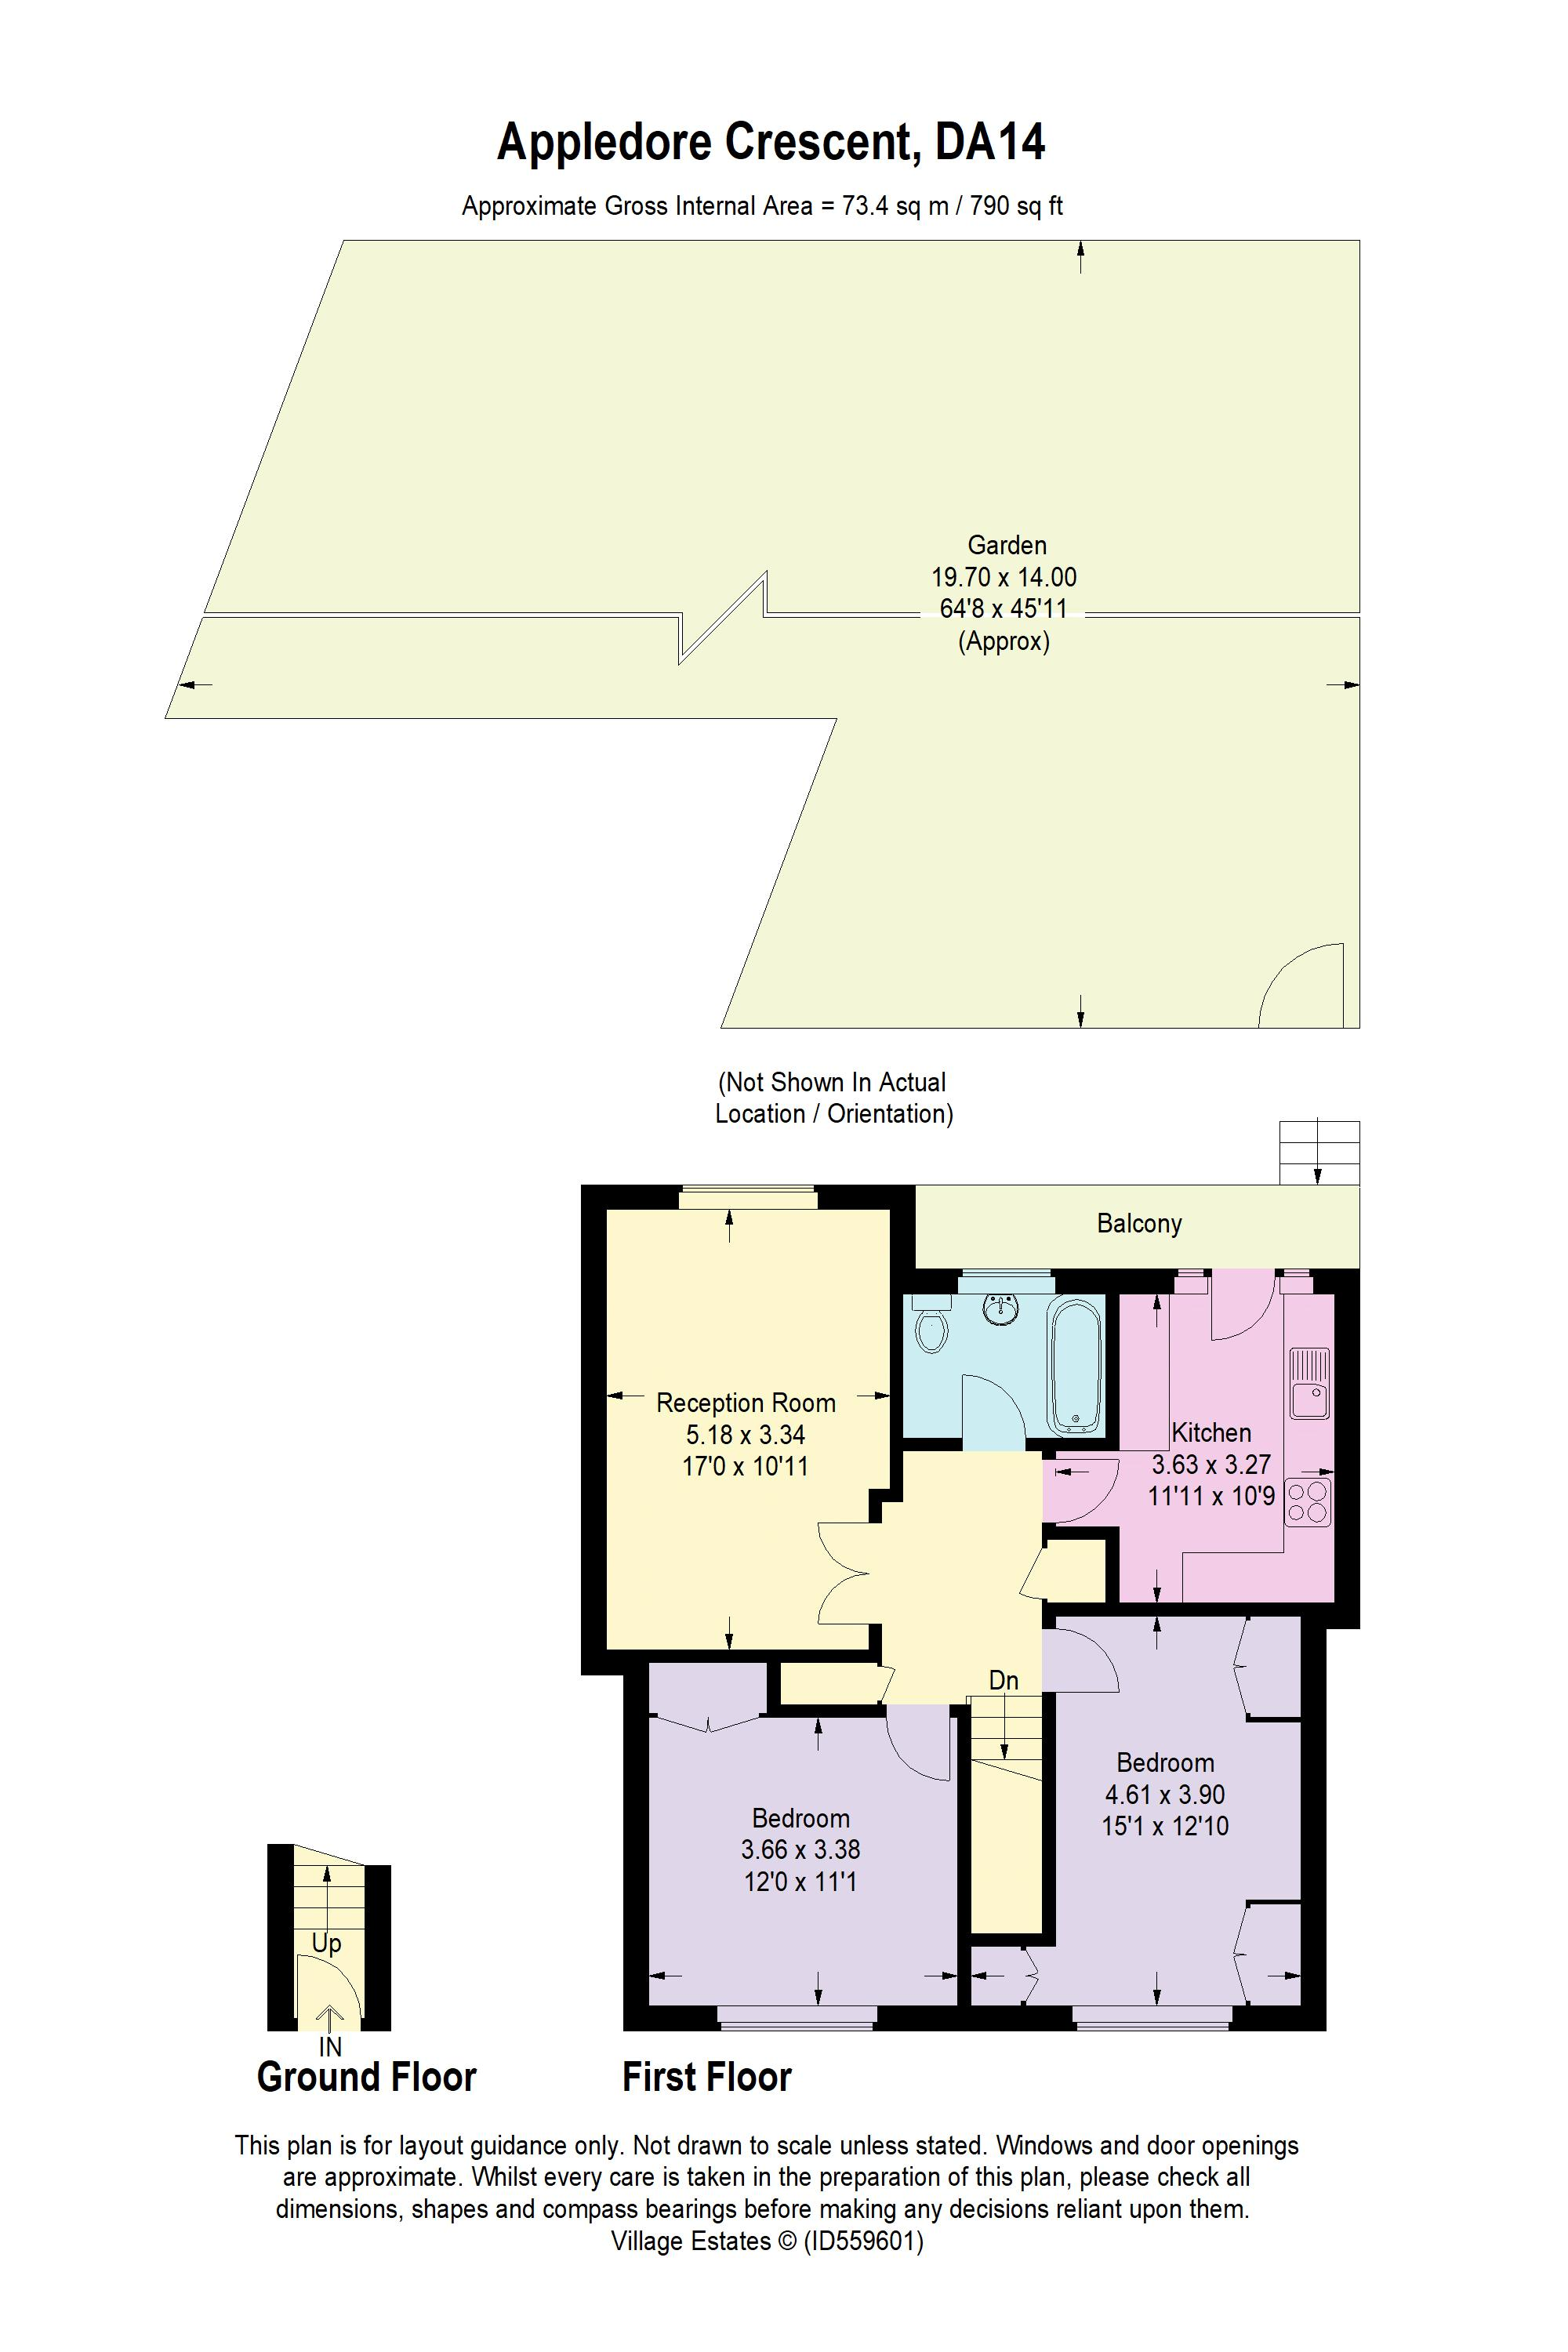 Appledore Crescent Floorplan